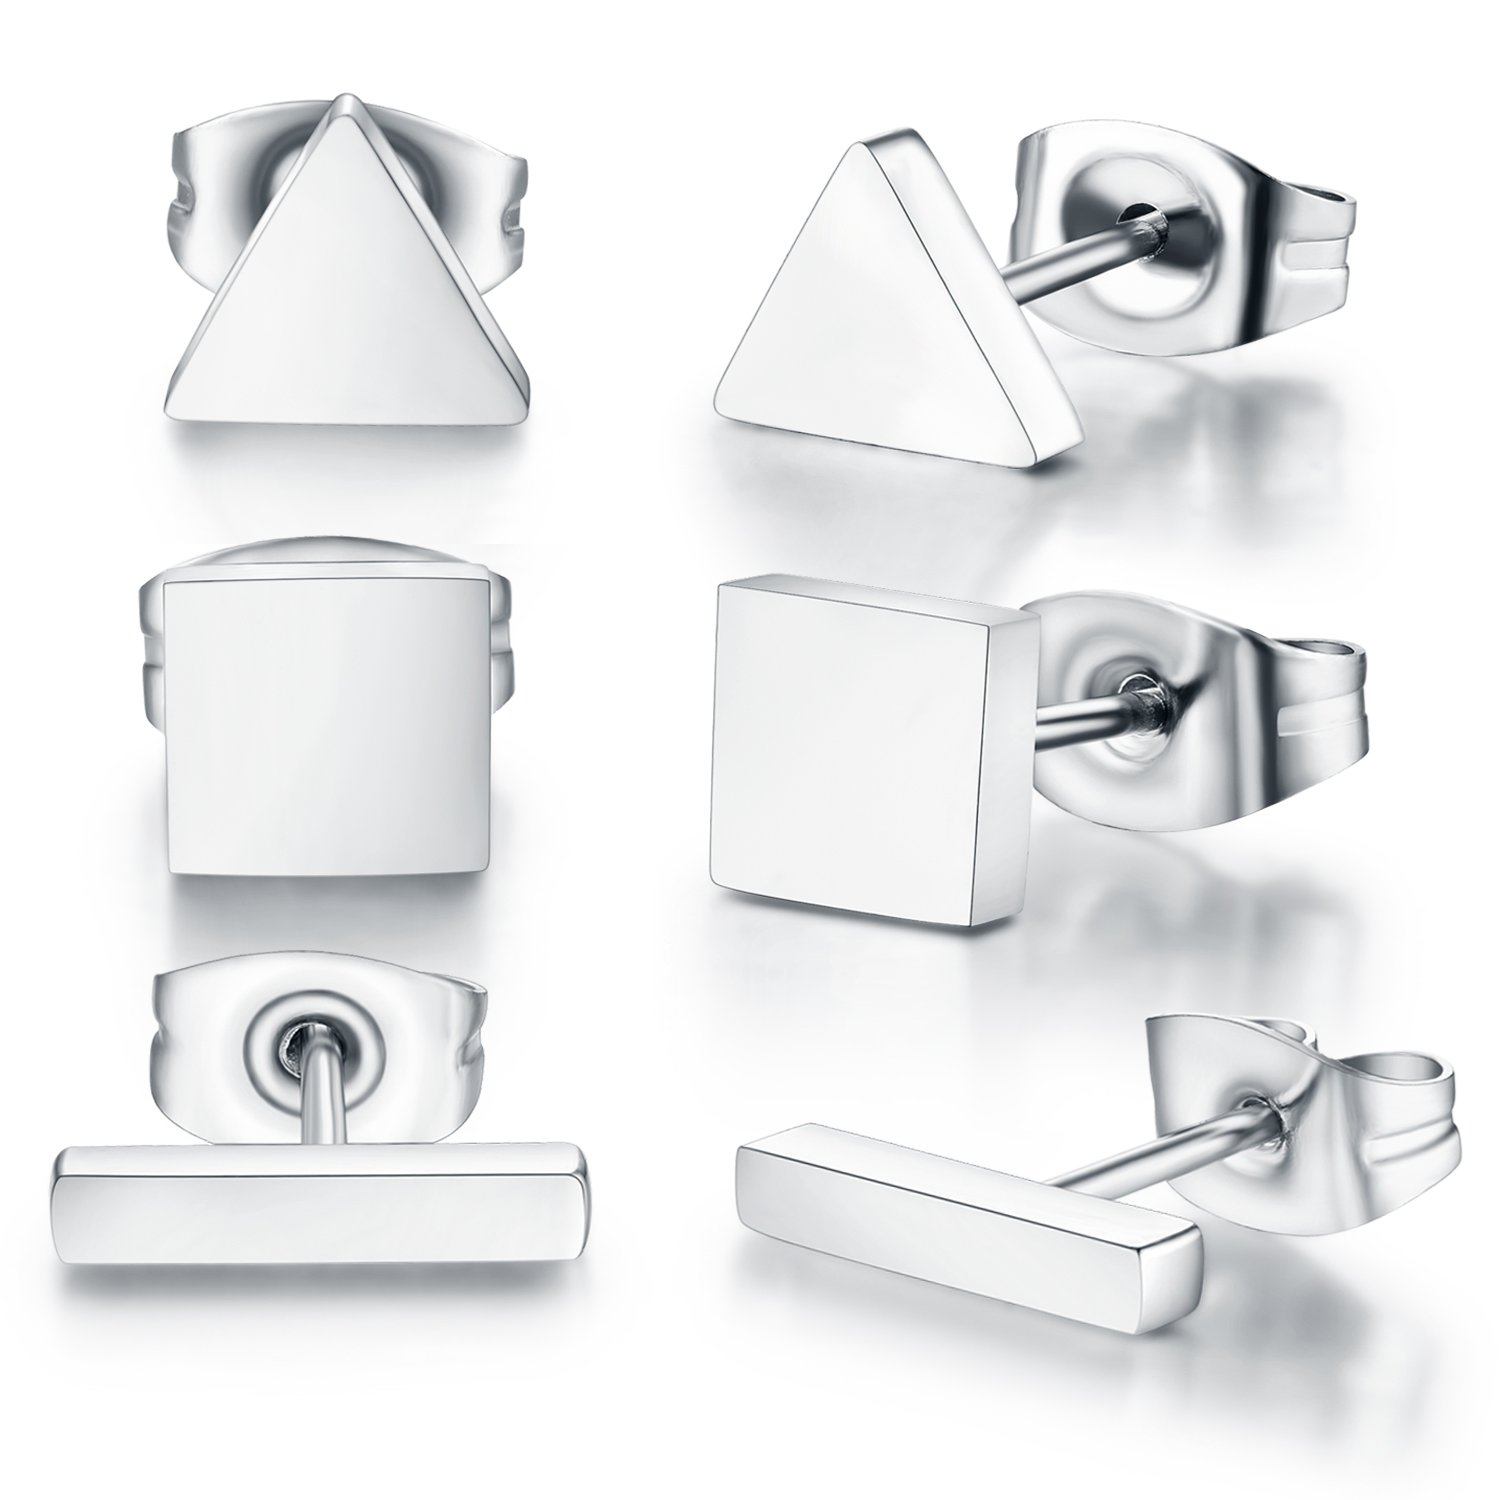 SPINEX 3 Pairs Silver Stud Earring Set Pierced (Rectangle, Square, Triangle) by SPINEX (Image #2)